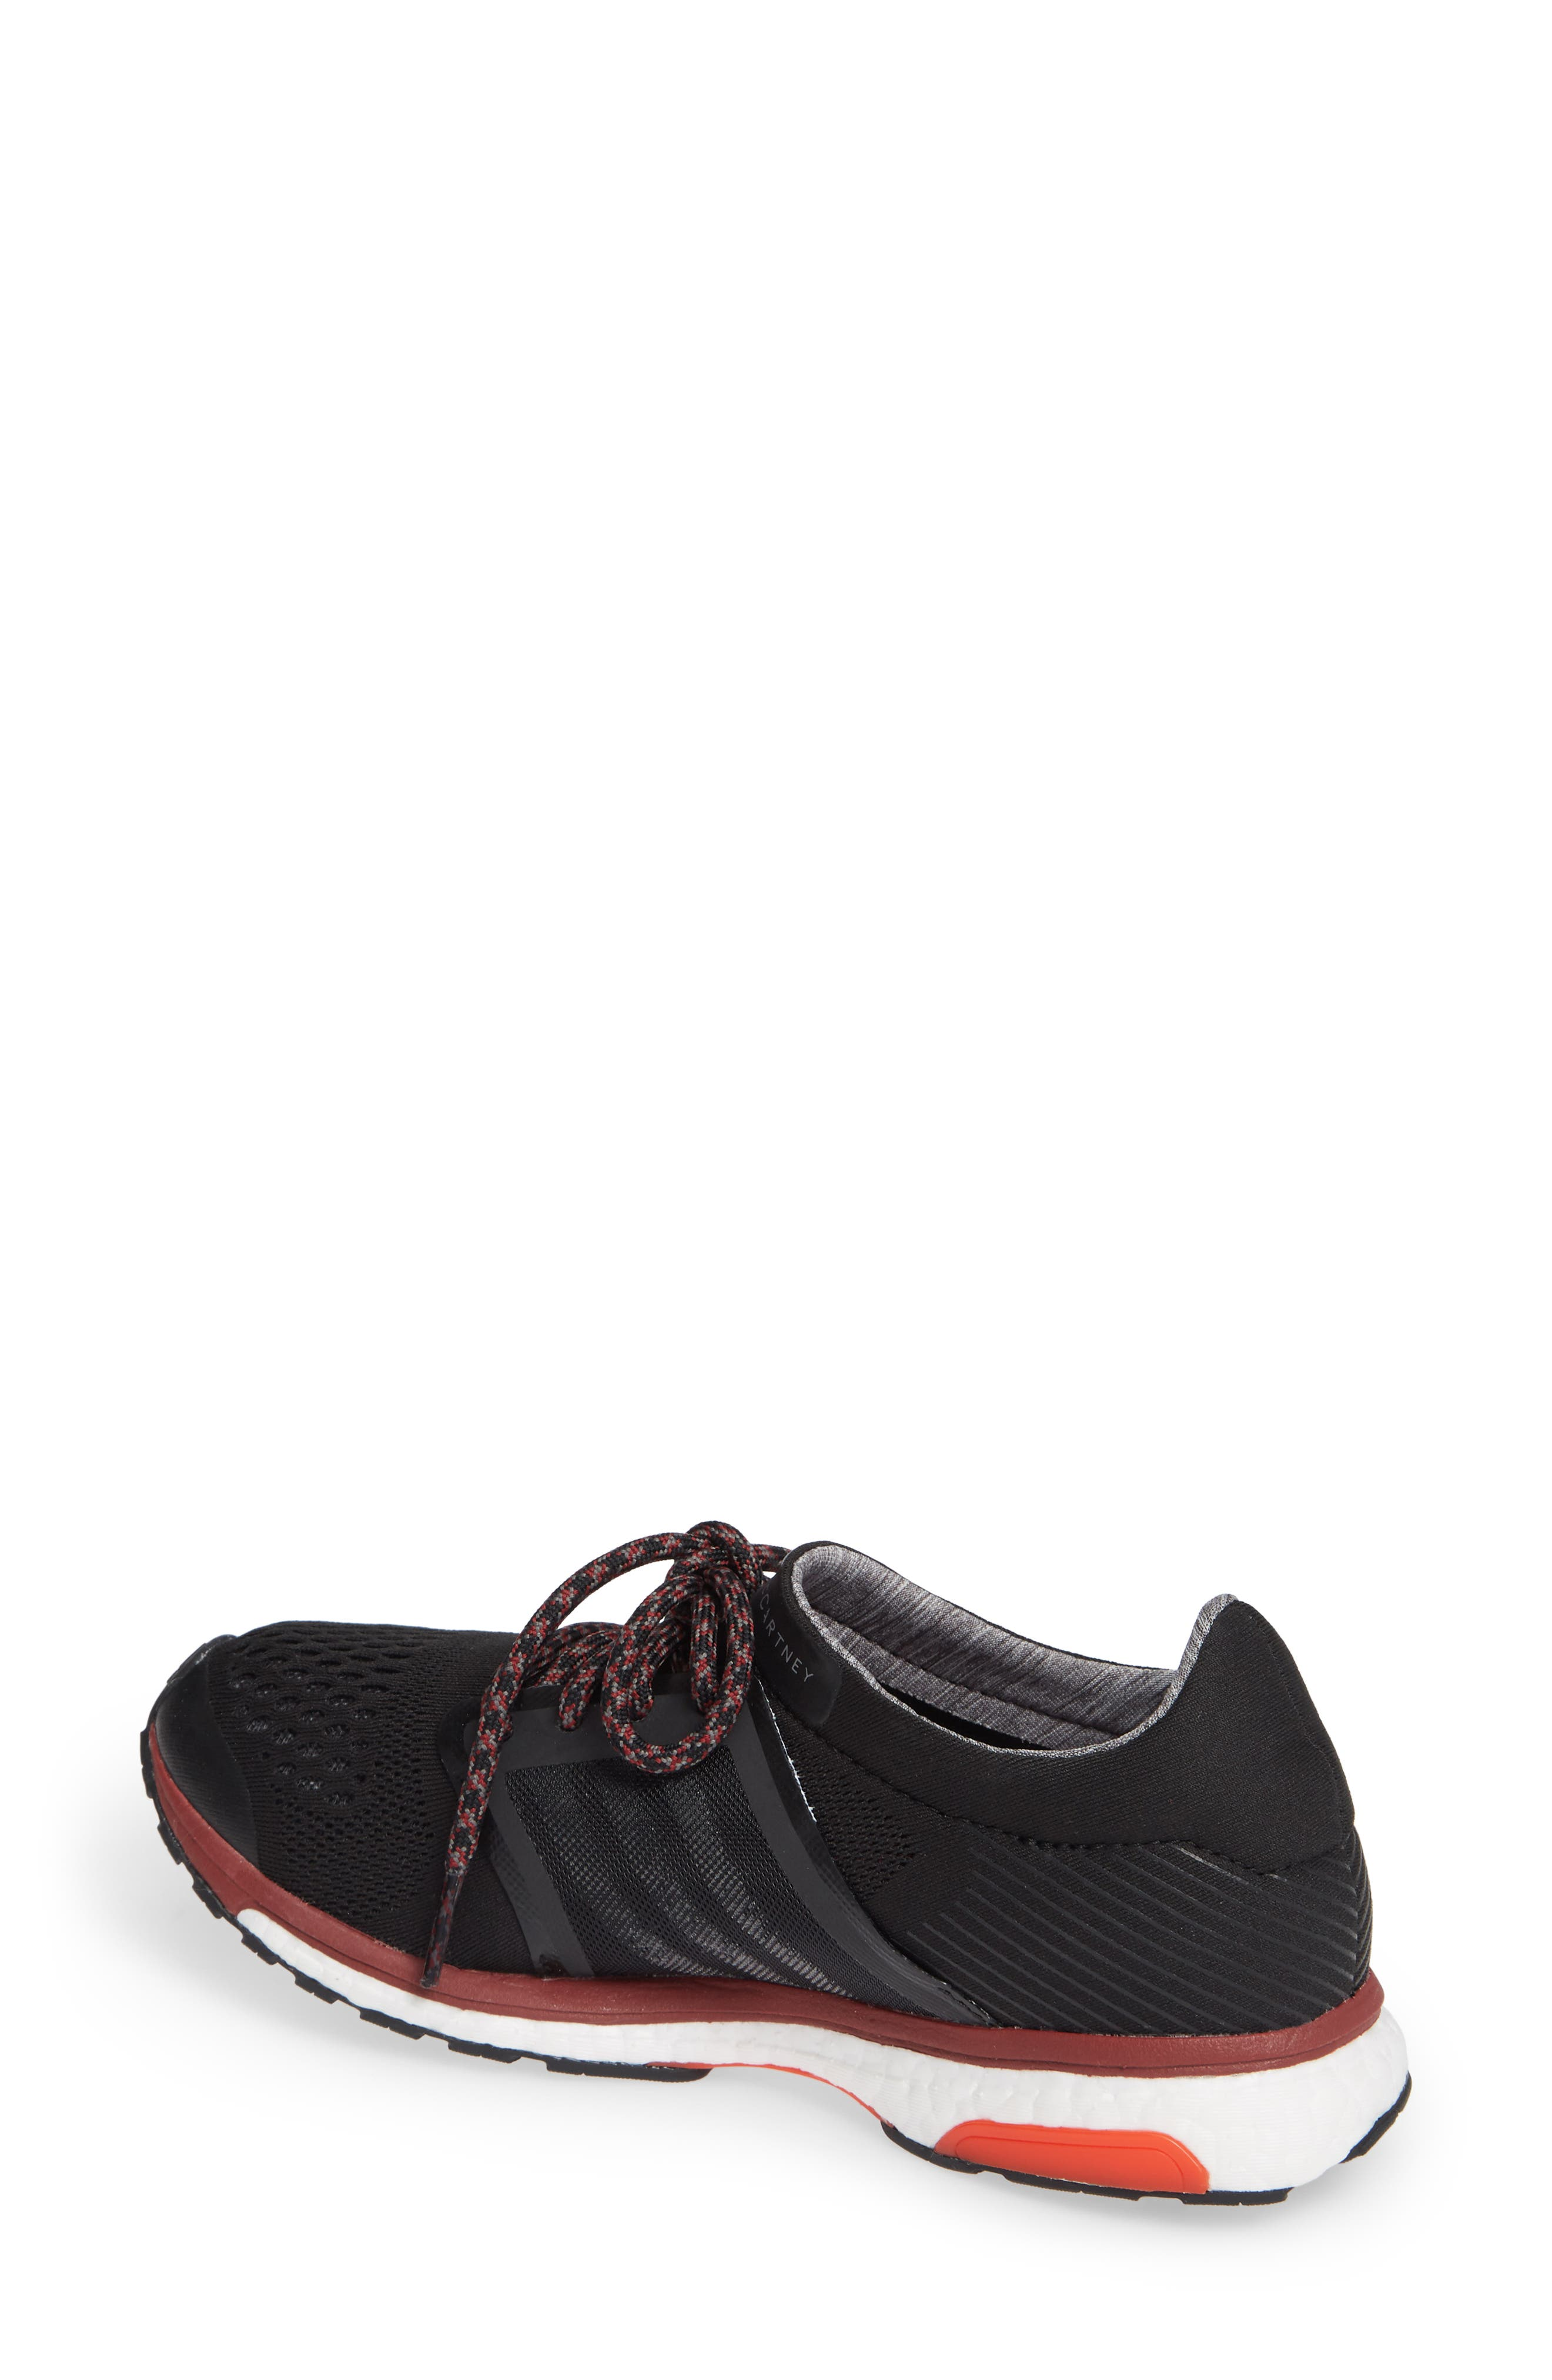 by Stella McCartney Adizero Adios Running Shoe,                             Alternate thumbnail 2, color,                             001